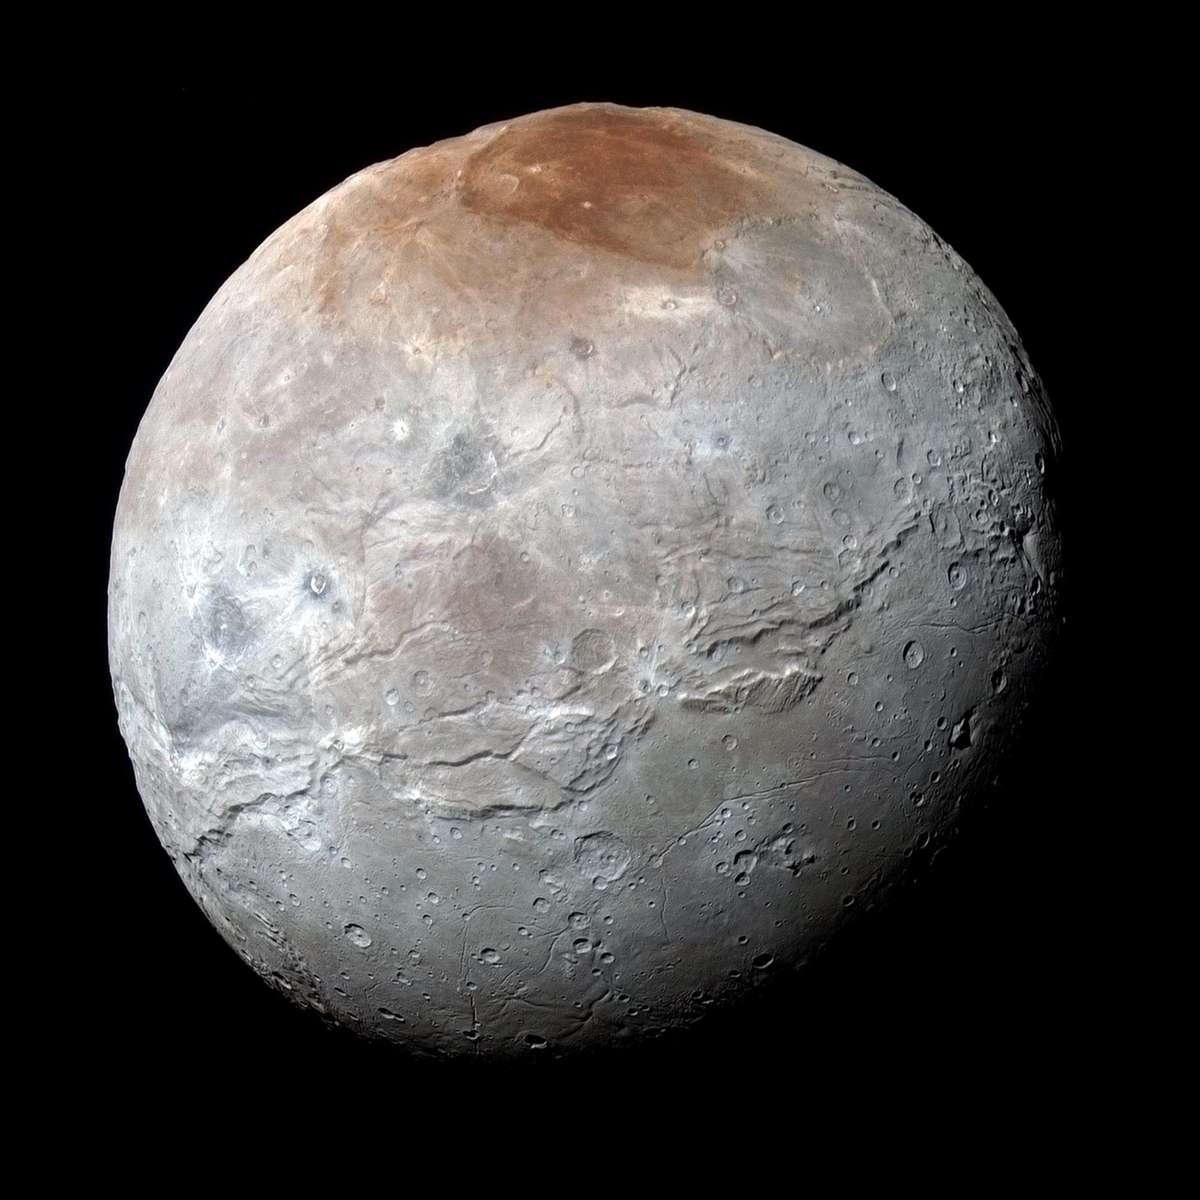 nh-charon-neutral-bright-release_0.jpg